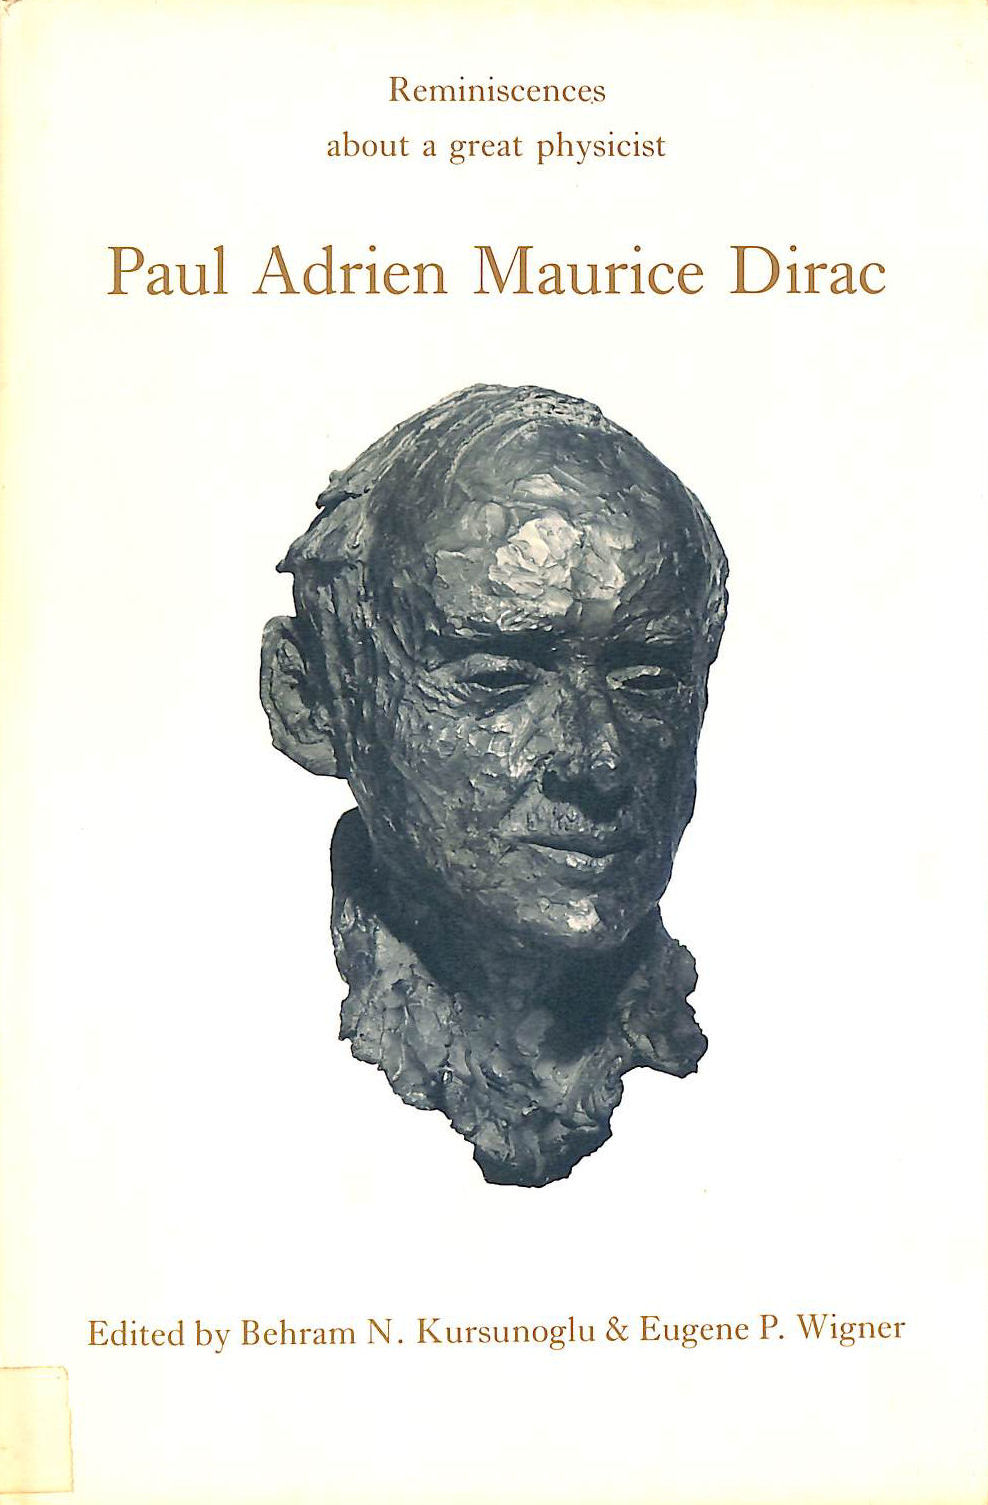 Image for Paul Adrien Maurice Dirac: Reminiscences about a Great Physicist